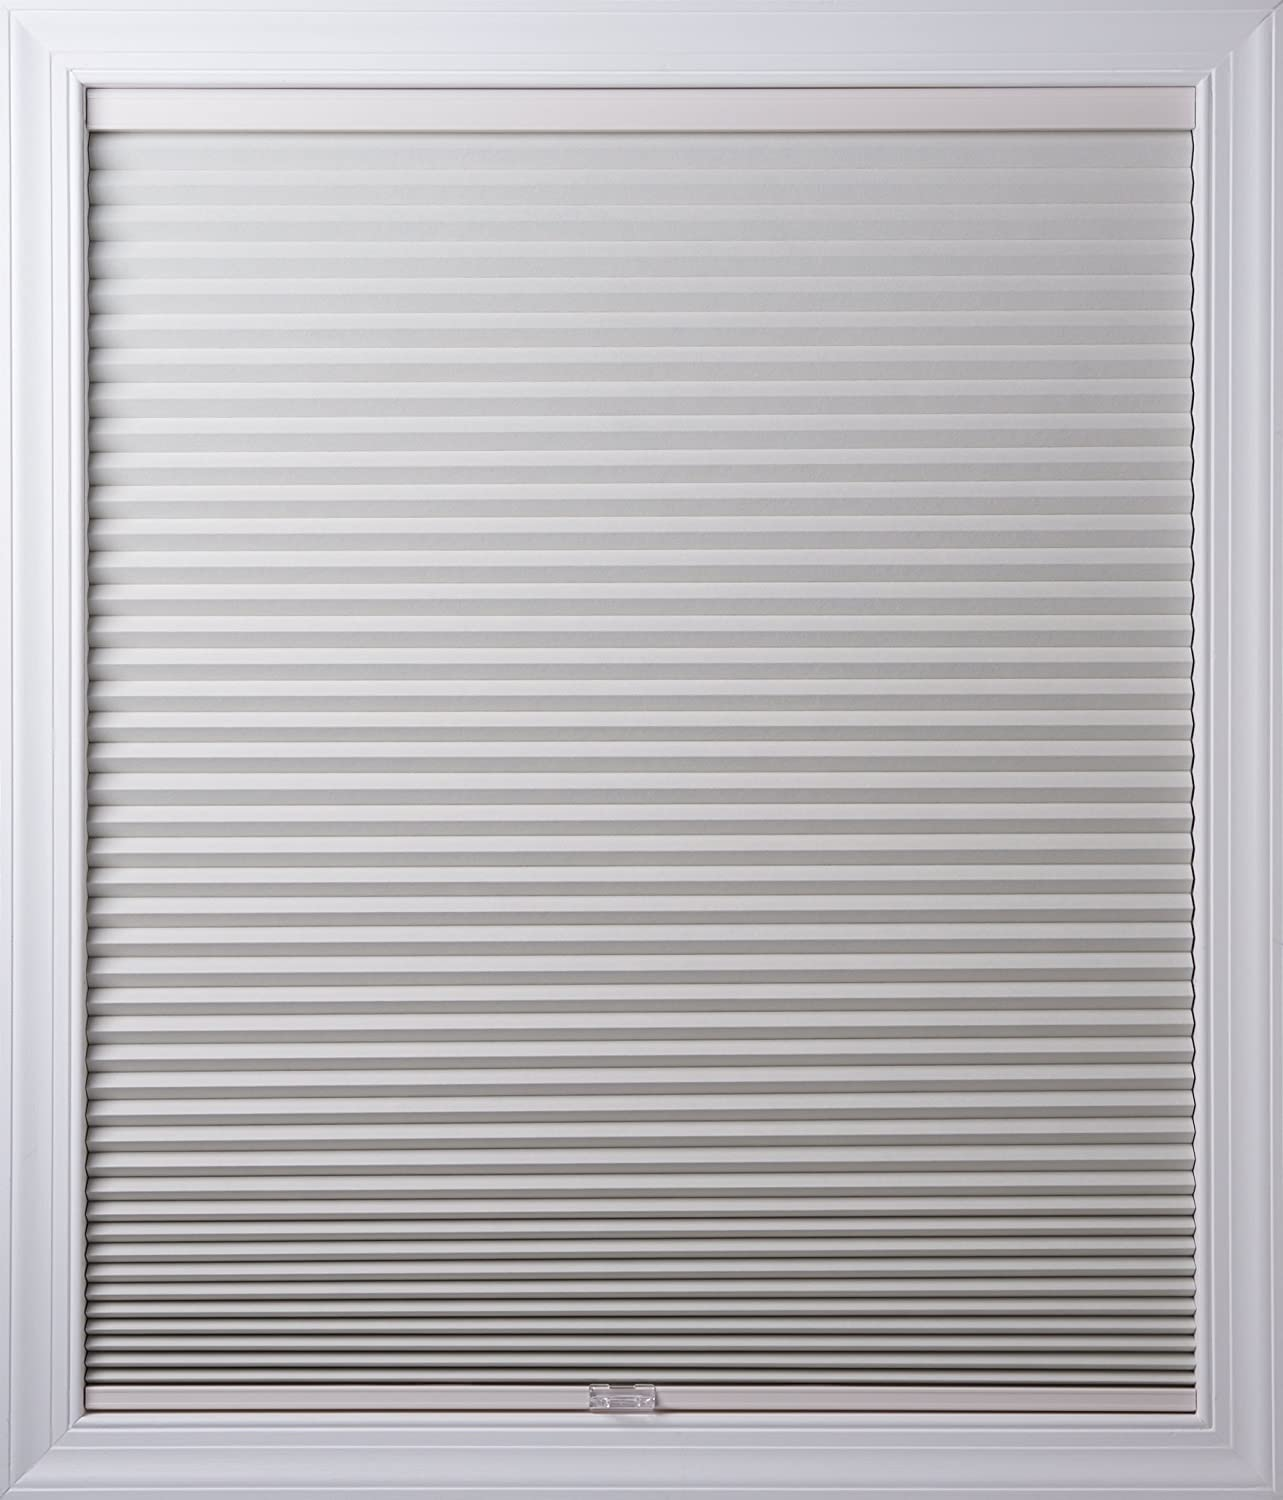 New Age Blinds 34 inch x 72 inch Cordless Cellular Shades, Inside Frame Mount, White Dove, Room Darkening Worldwide 7234NAWFIRDWHD